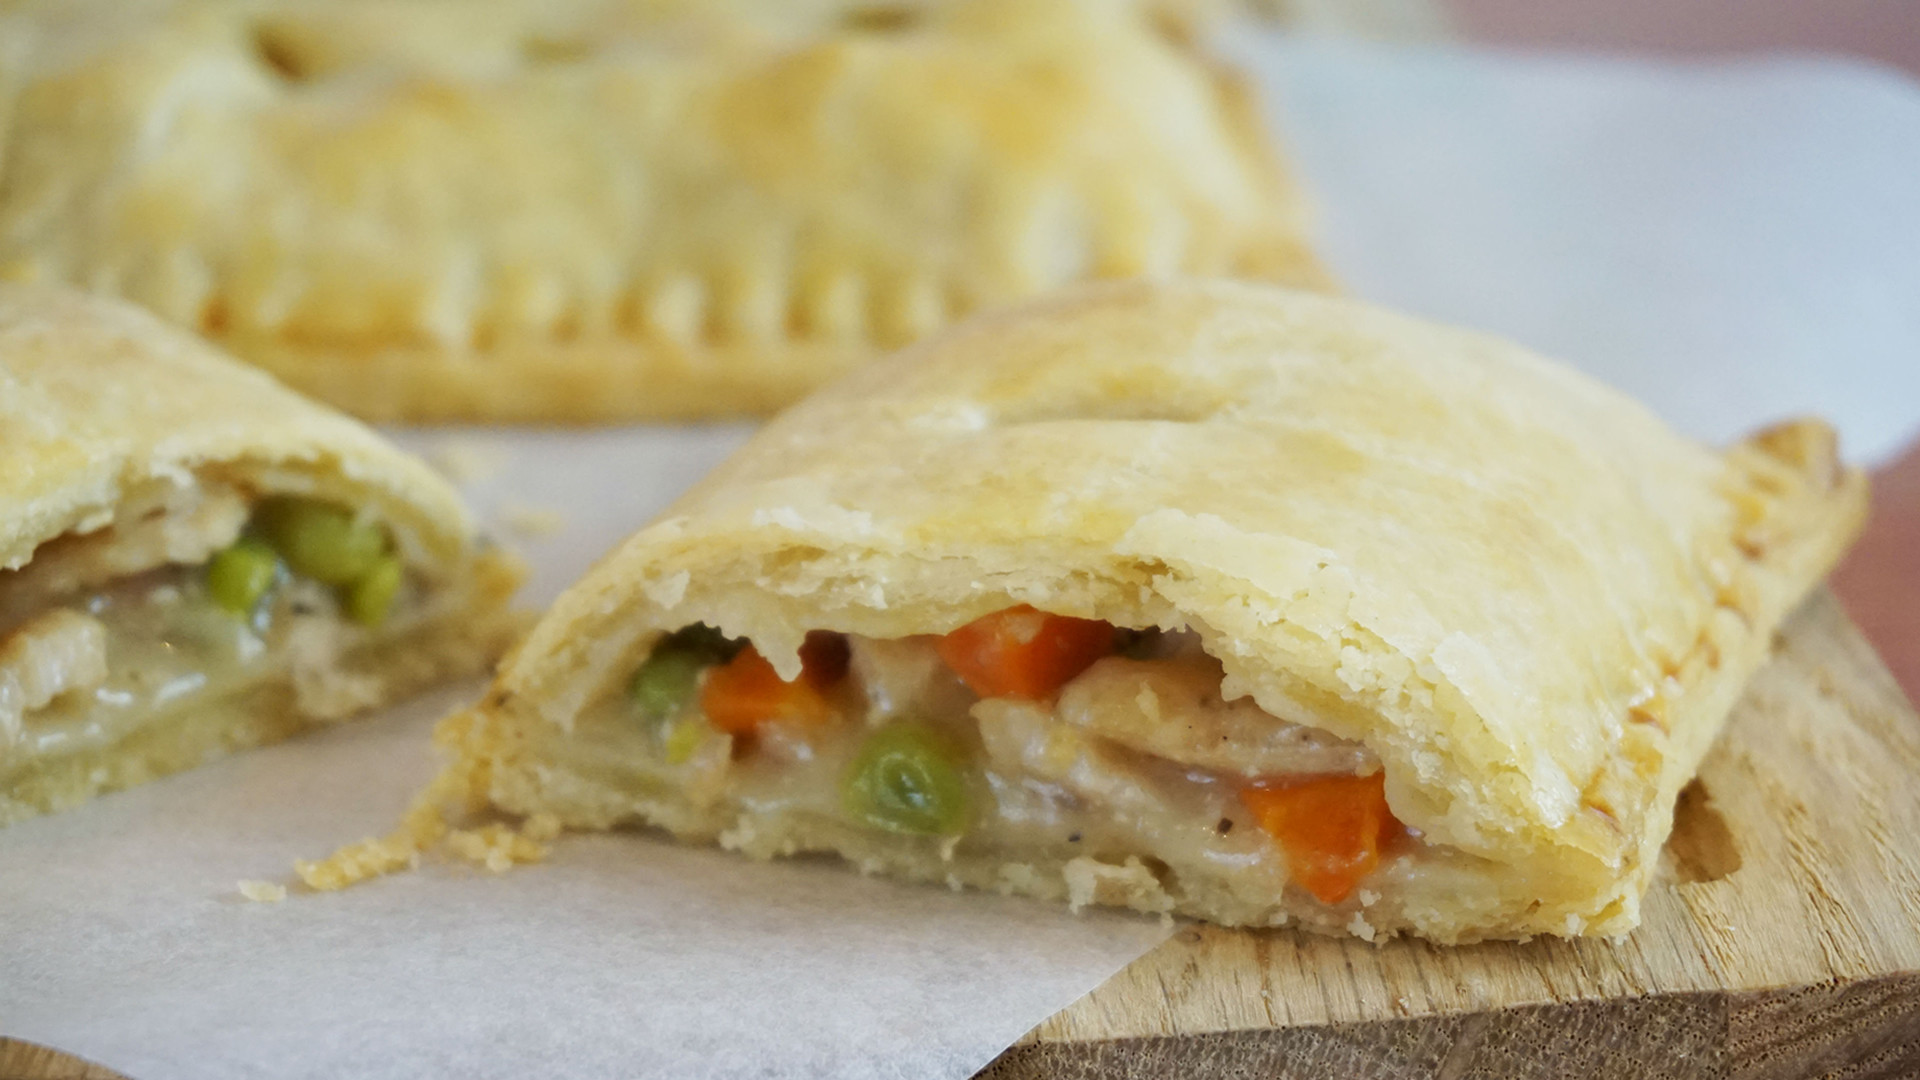 Chicken-Pot-Pie-Pockets-OC-1920x1080-wallpaper-wp3803754